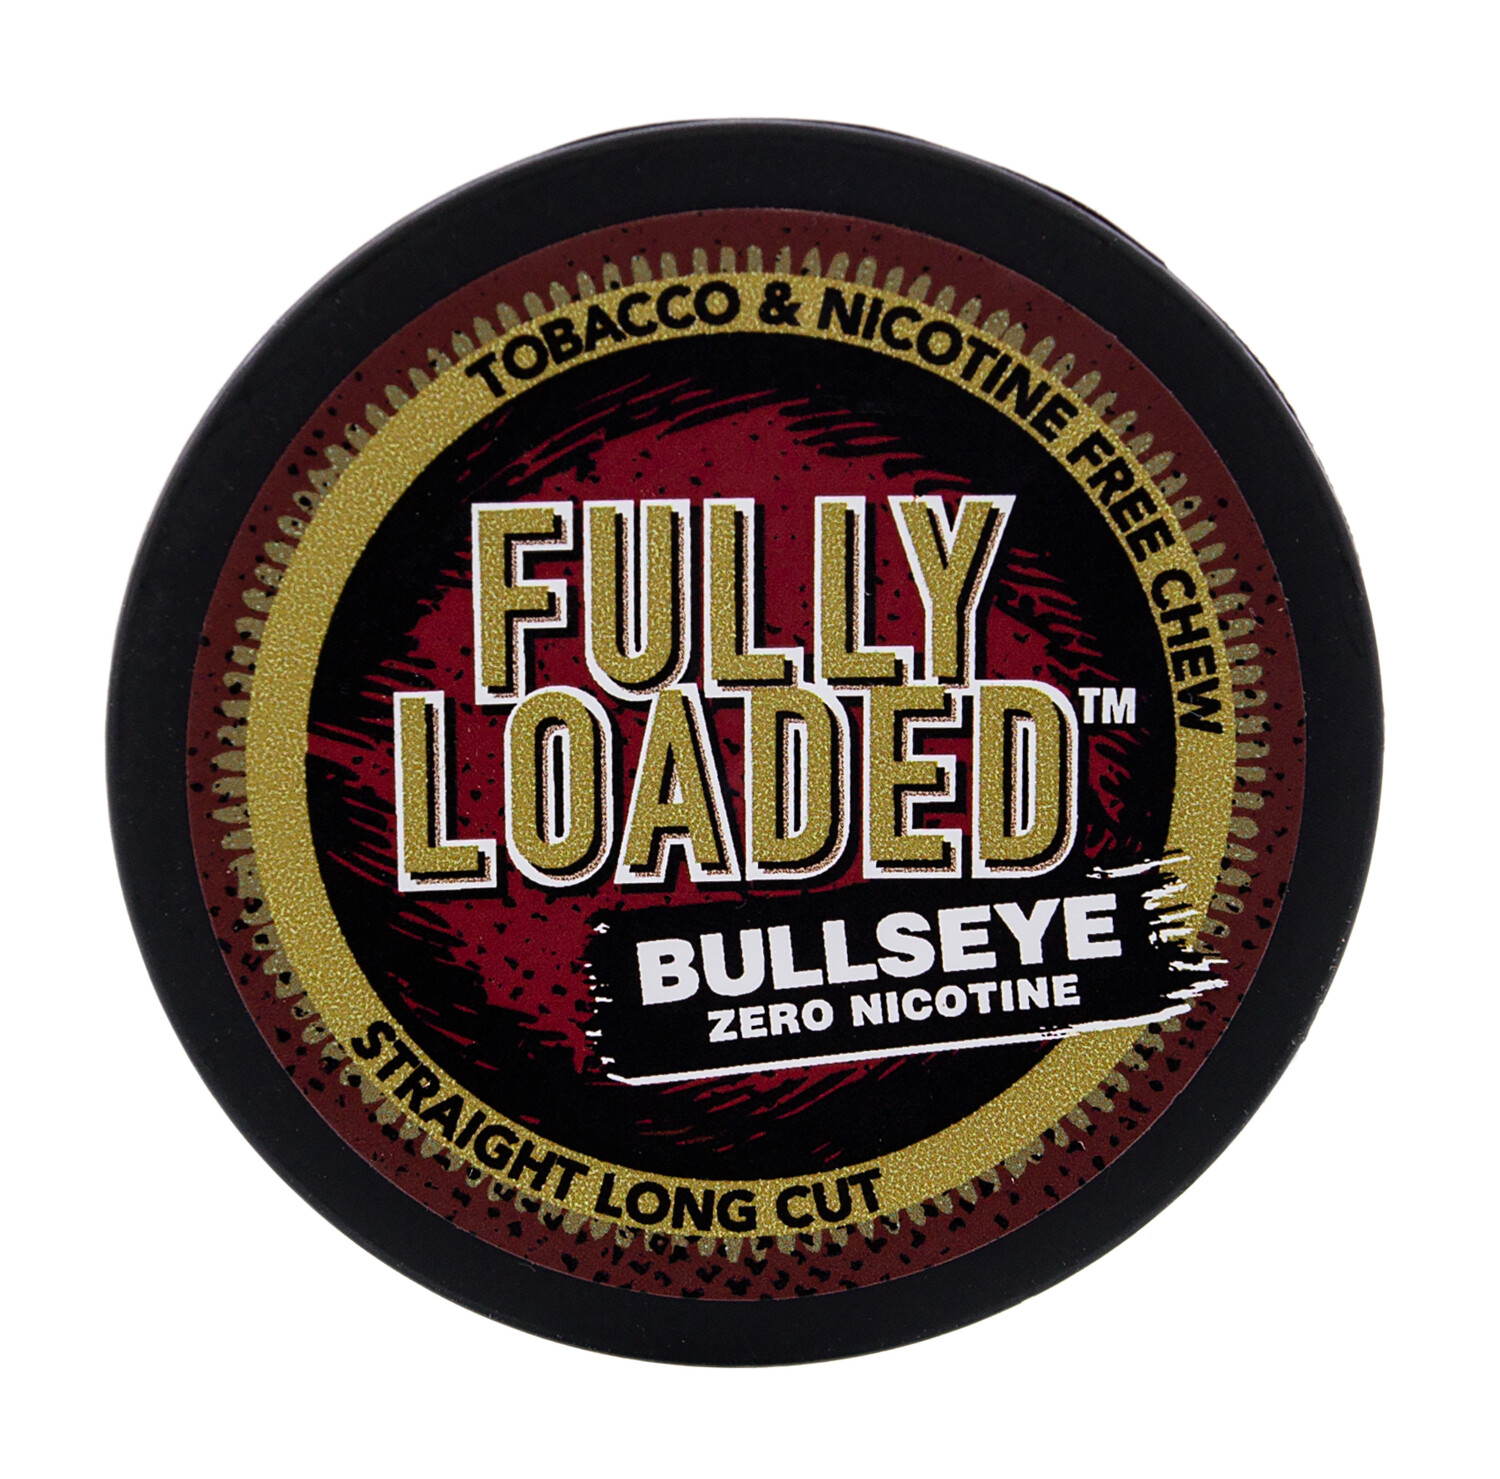 Fully Loaded Chew Tobacco and Nicotine Free Straight Bullseye Long Cut Authentic Flavor, Chewing Alternative